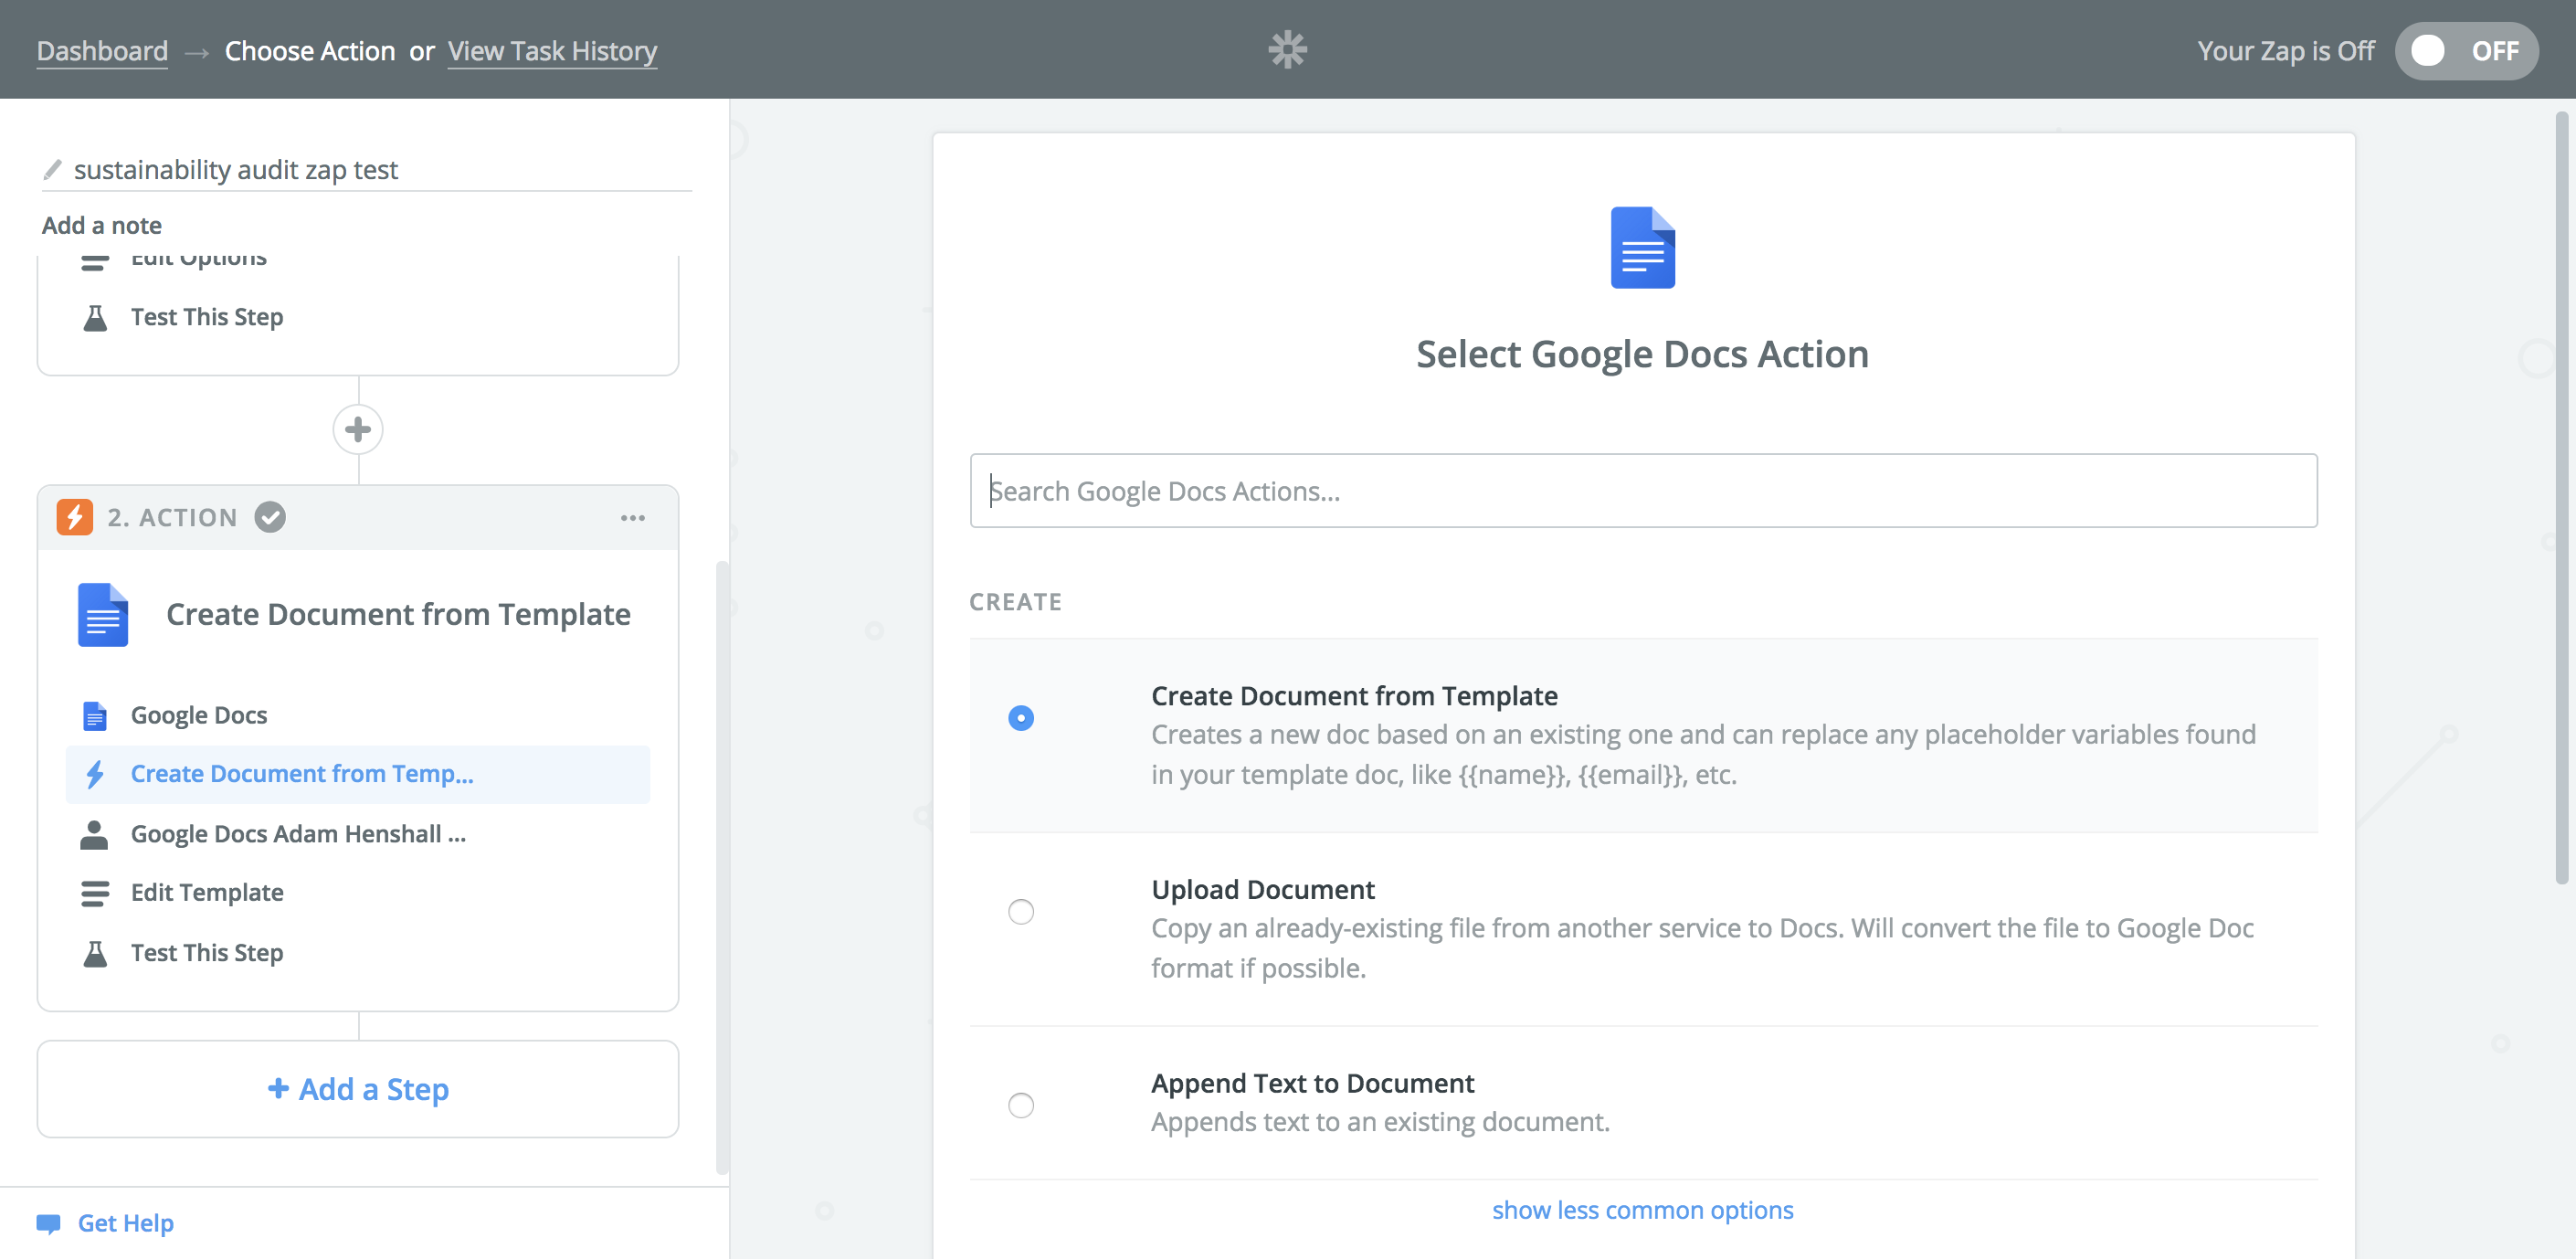 Select 'Create a Document from Template' as the action step. This will create a google document from the Hotel Sustainability Audit Template.